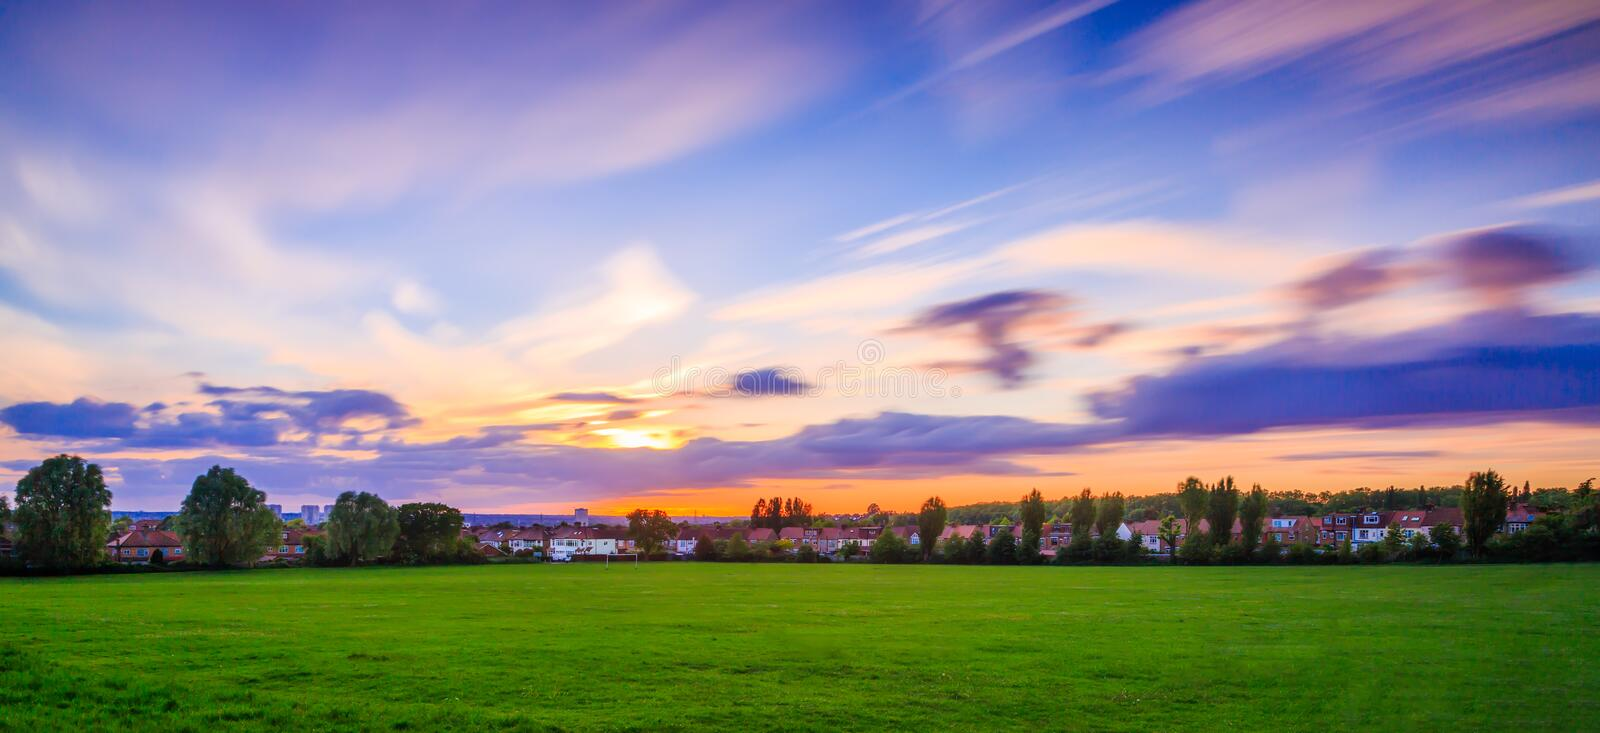 Landscapes with Moving Skies stock image